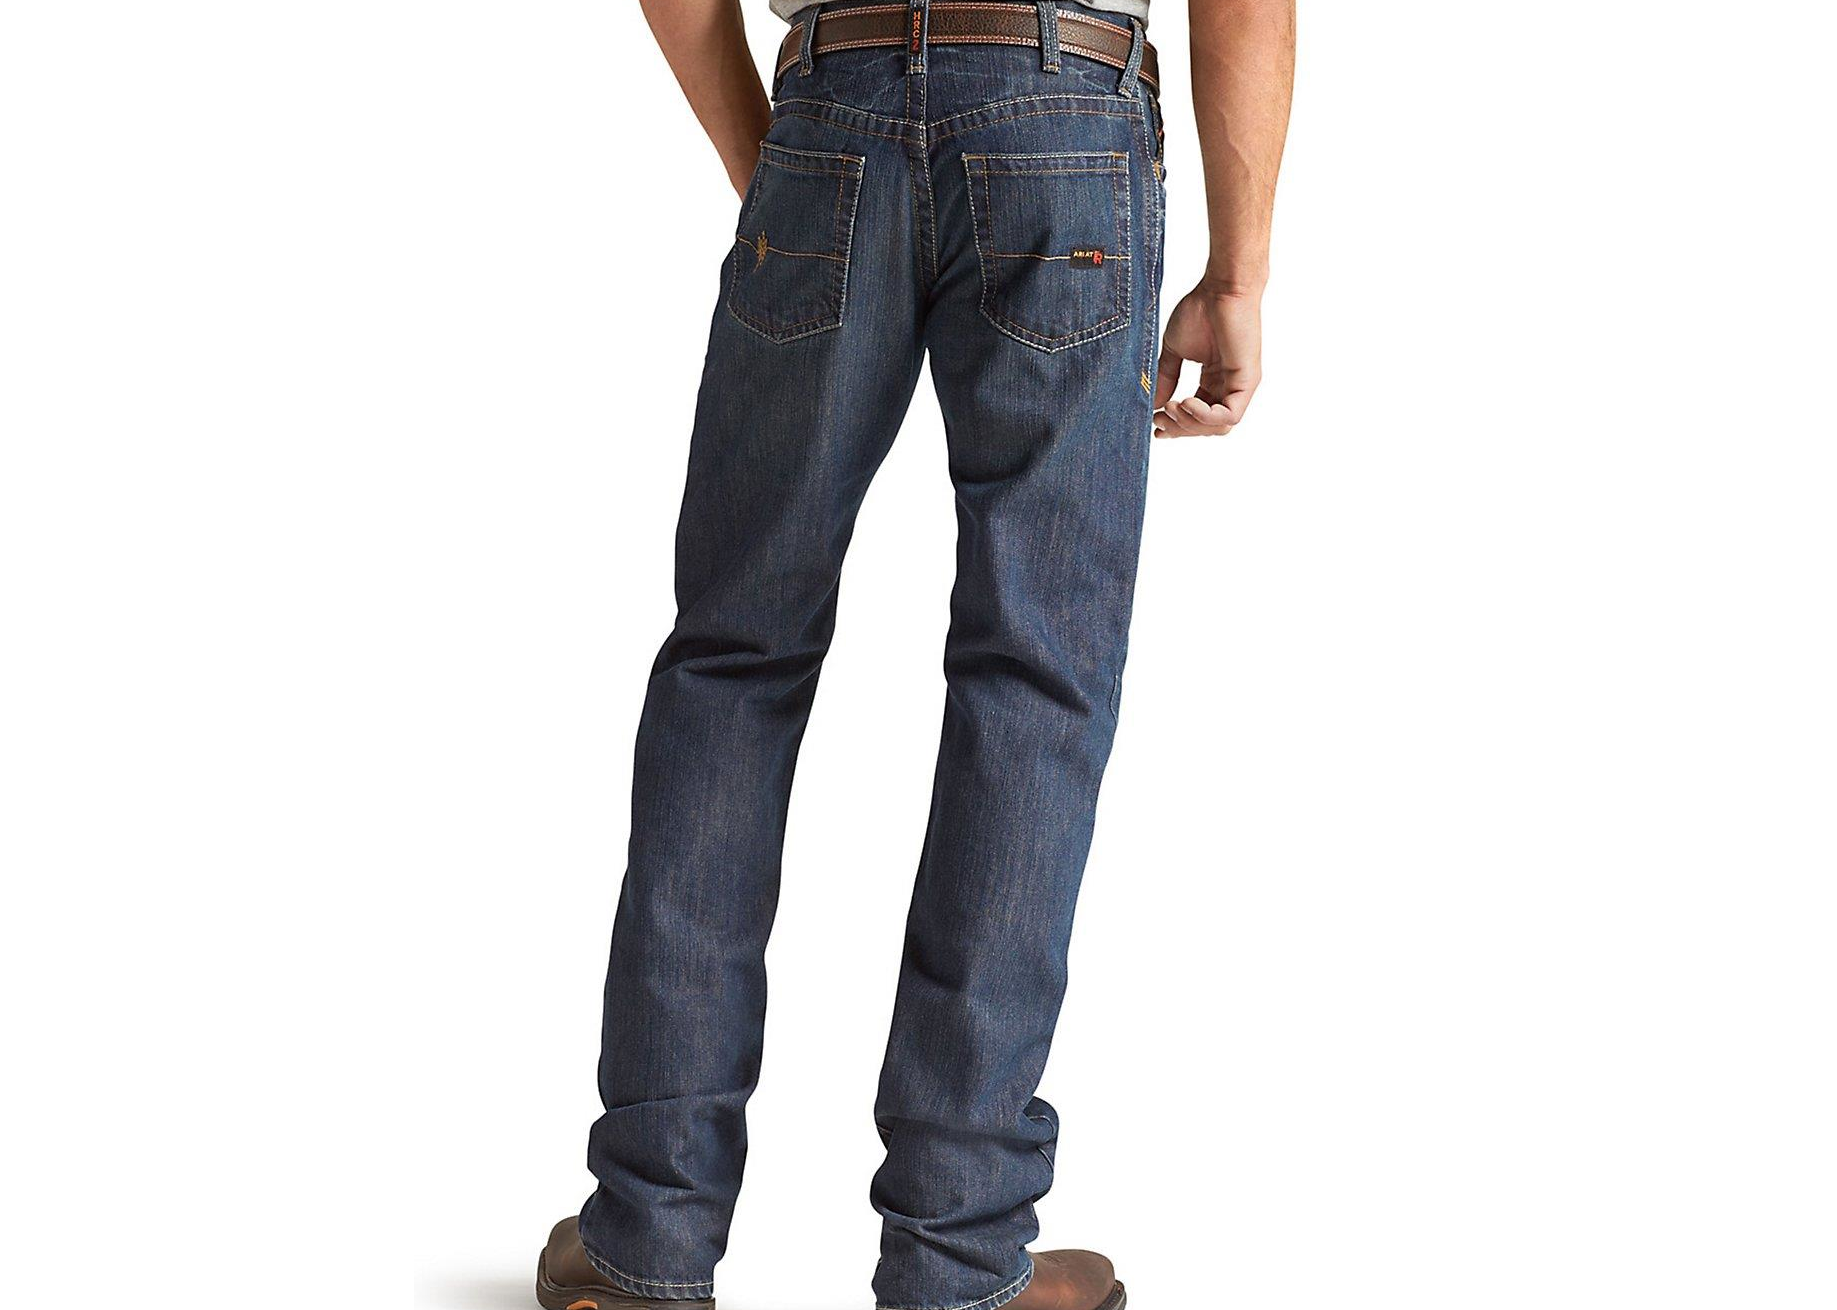 Ariat 10015166 M5 Flame Resistant Jeans